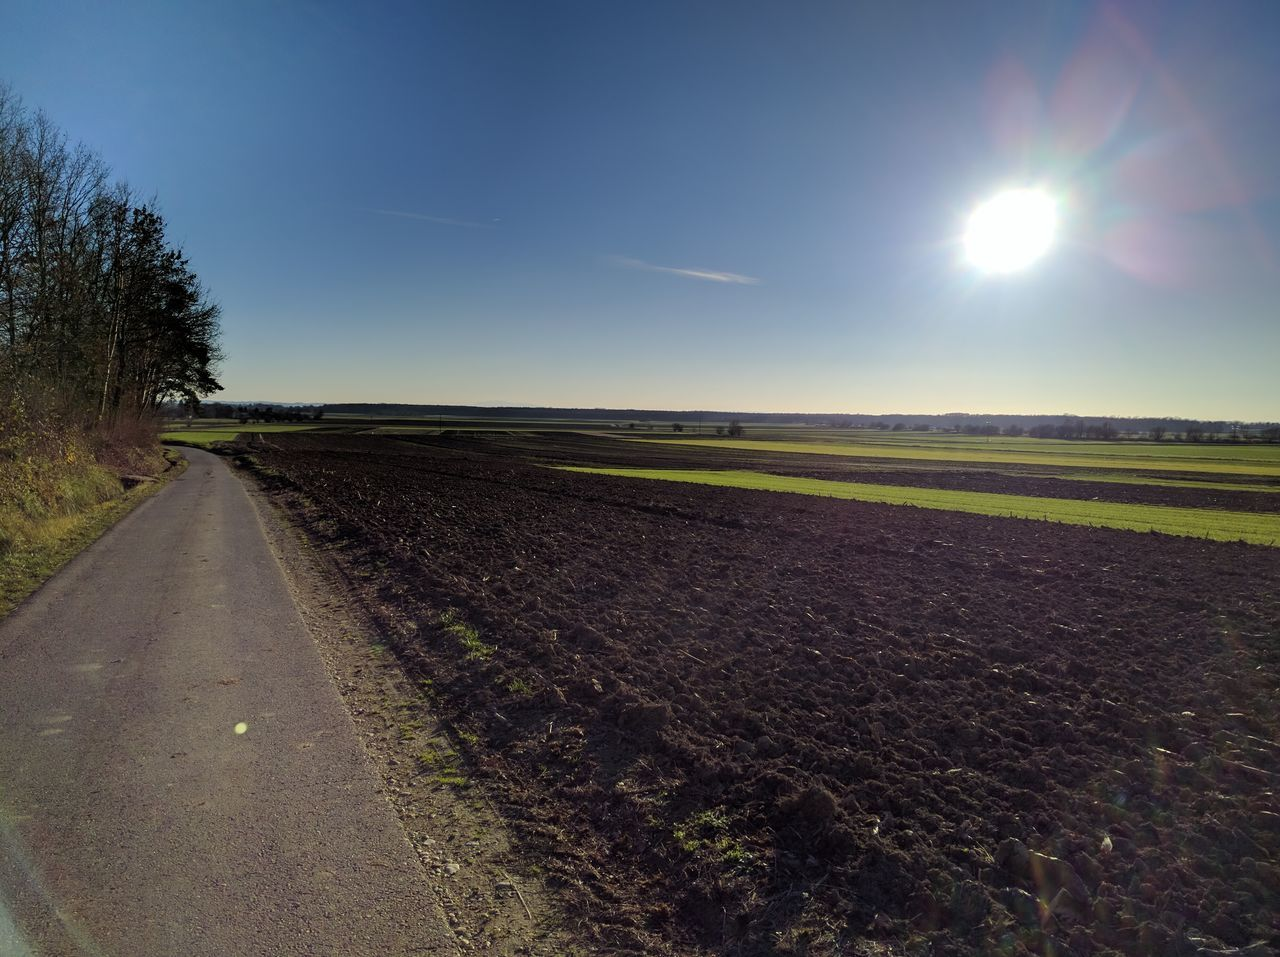 One Road Sun Clear Sky Rural Scene Landscape Nature No People Day Fall Outdoors Road To Peace Plowed Field